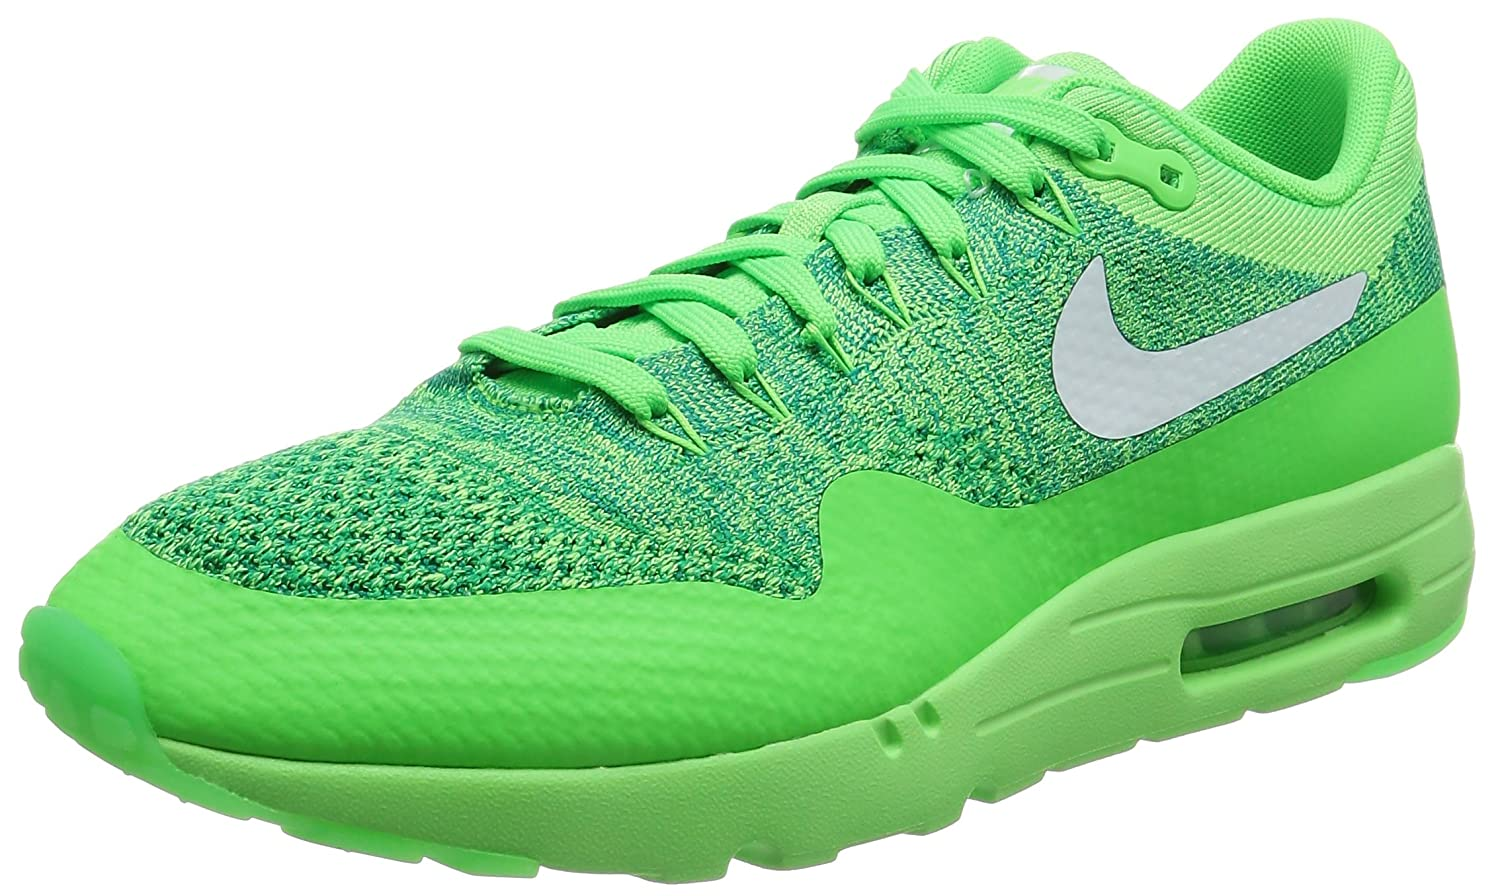 d4b22a9a8a846 Nike Men s Air Max 1 Ultra Flyknit Running Shoes Orange  Amazon.co.uk  Shoes    Bags